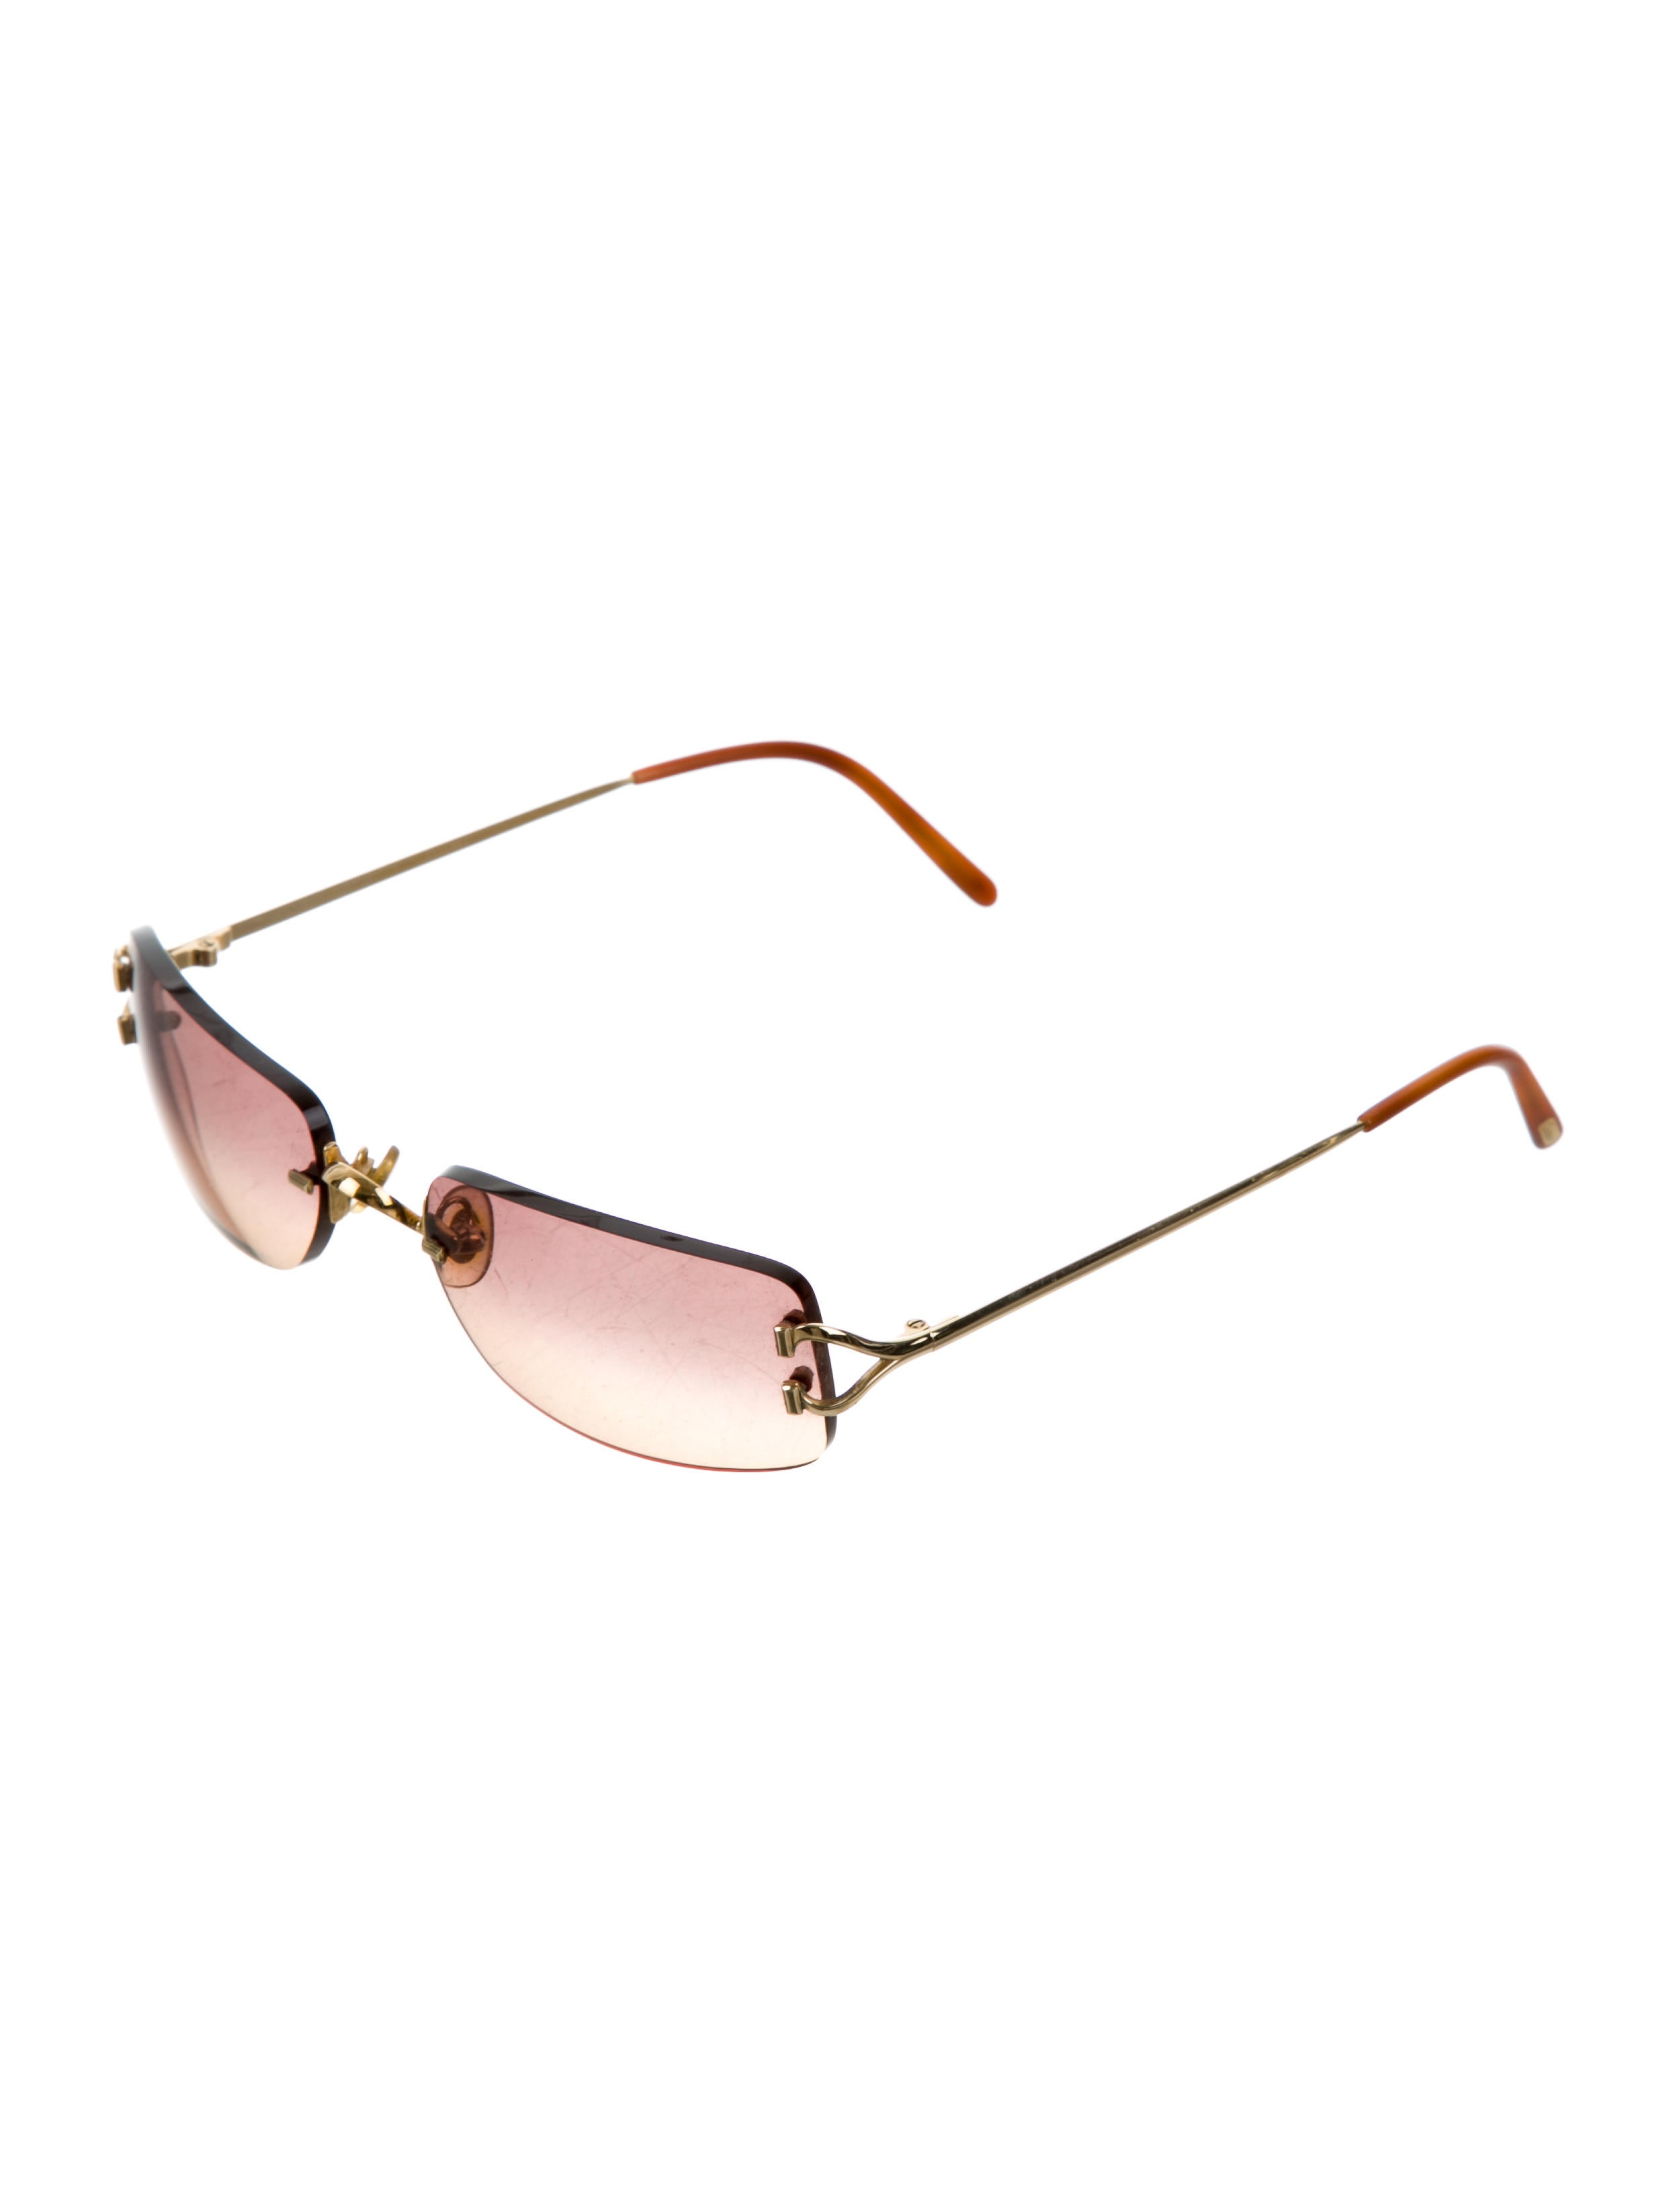 8352385d65a Cartier Rimless Sunglasses Coffee Gold « Heritage Malta